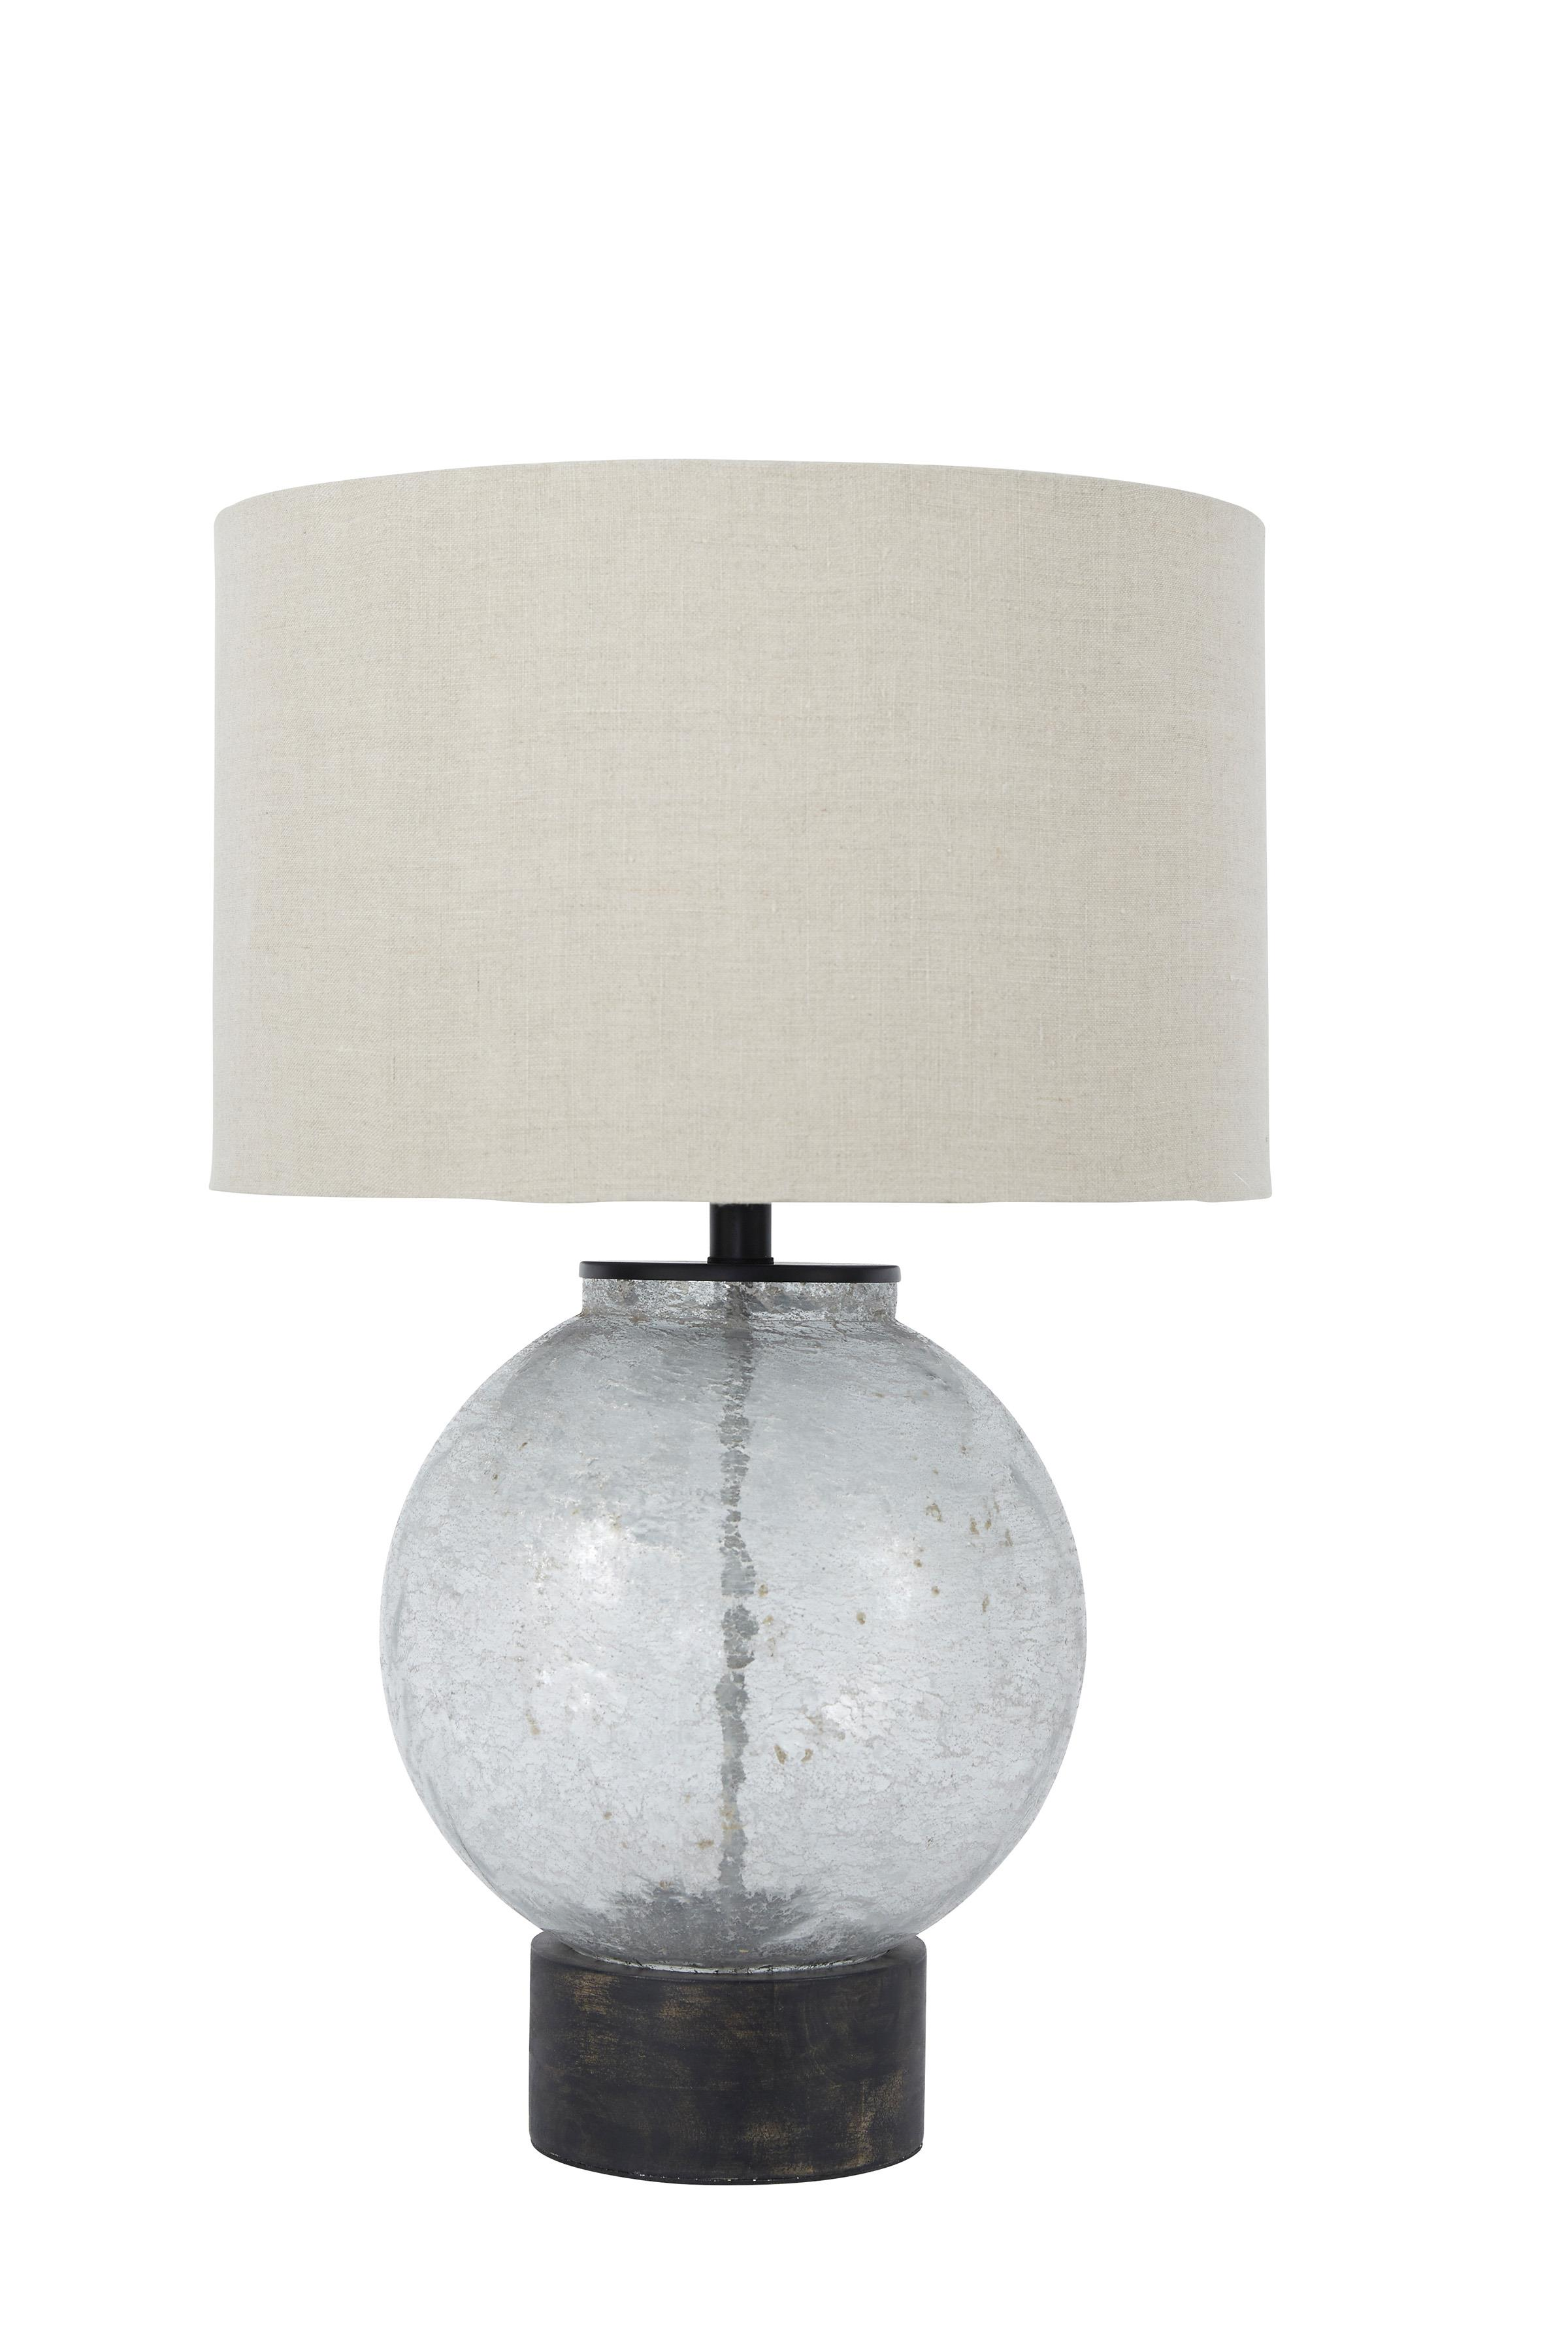 Signature Design by Ashley Lamps - Contemporary Shauni Transparent Glass Table Lamp - Item Number: L430224